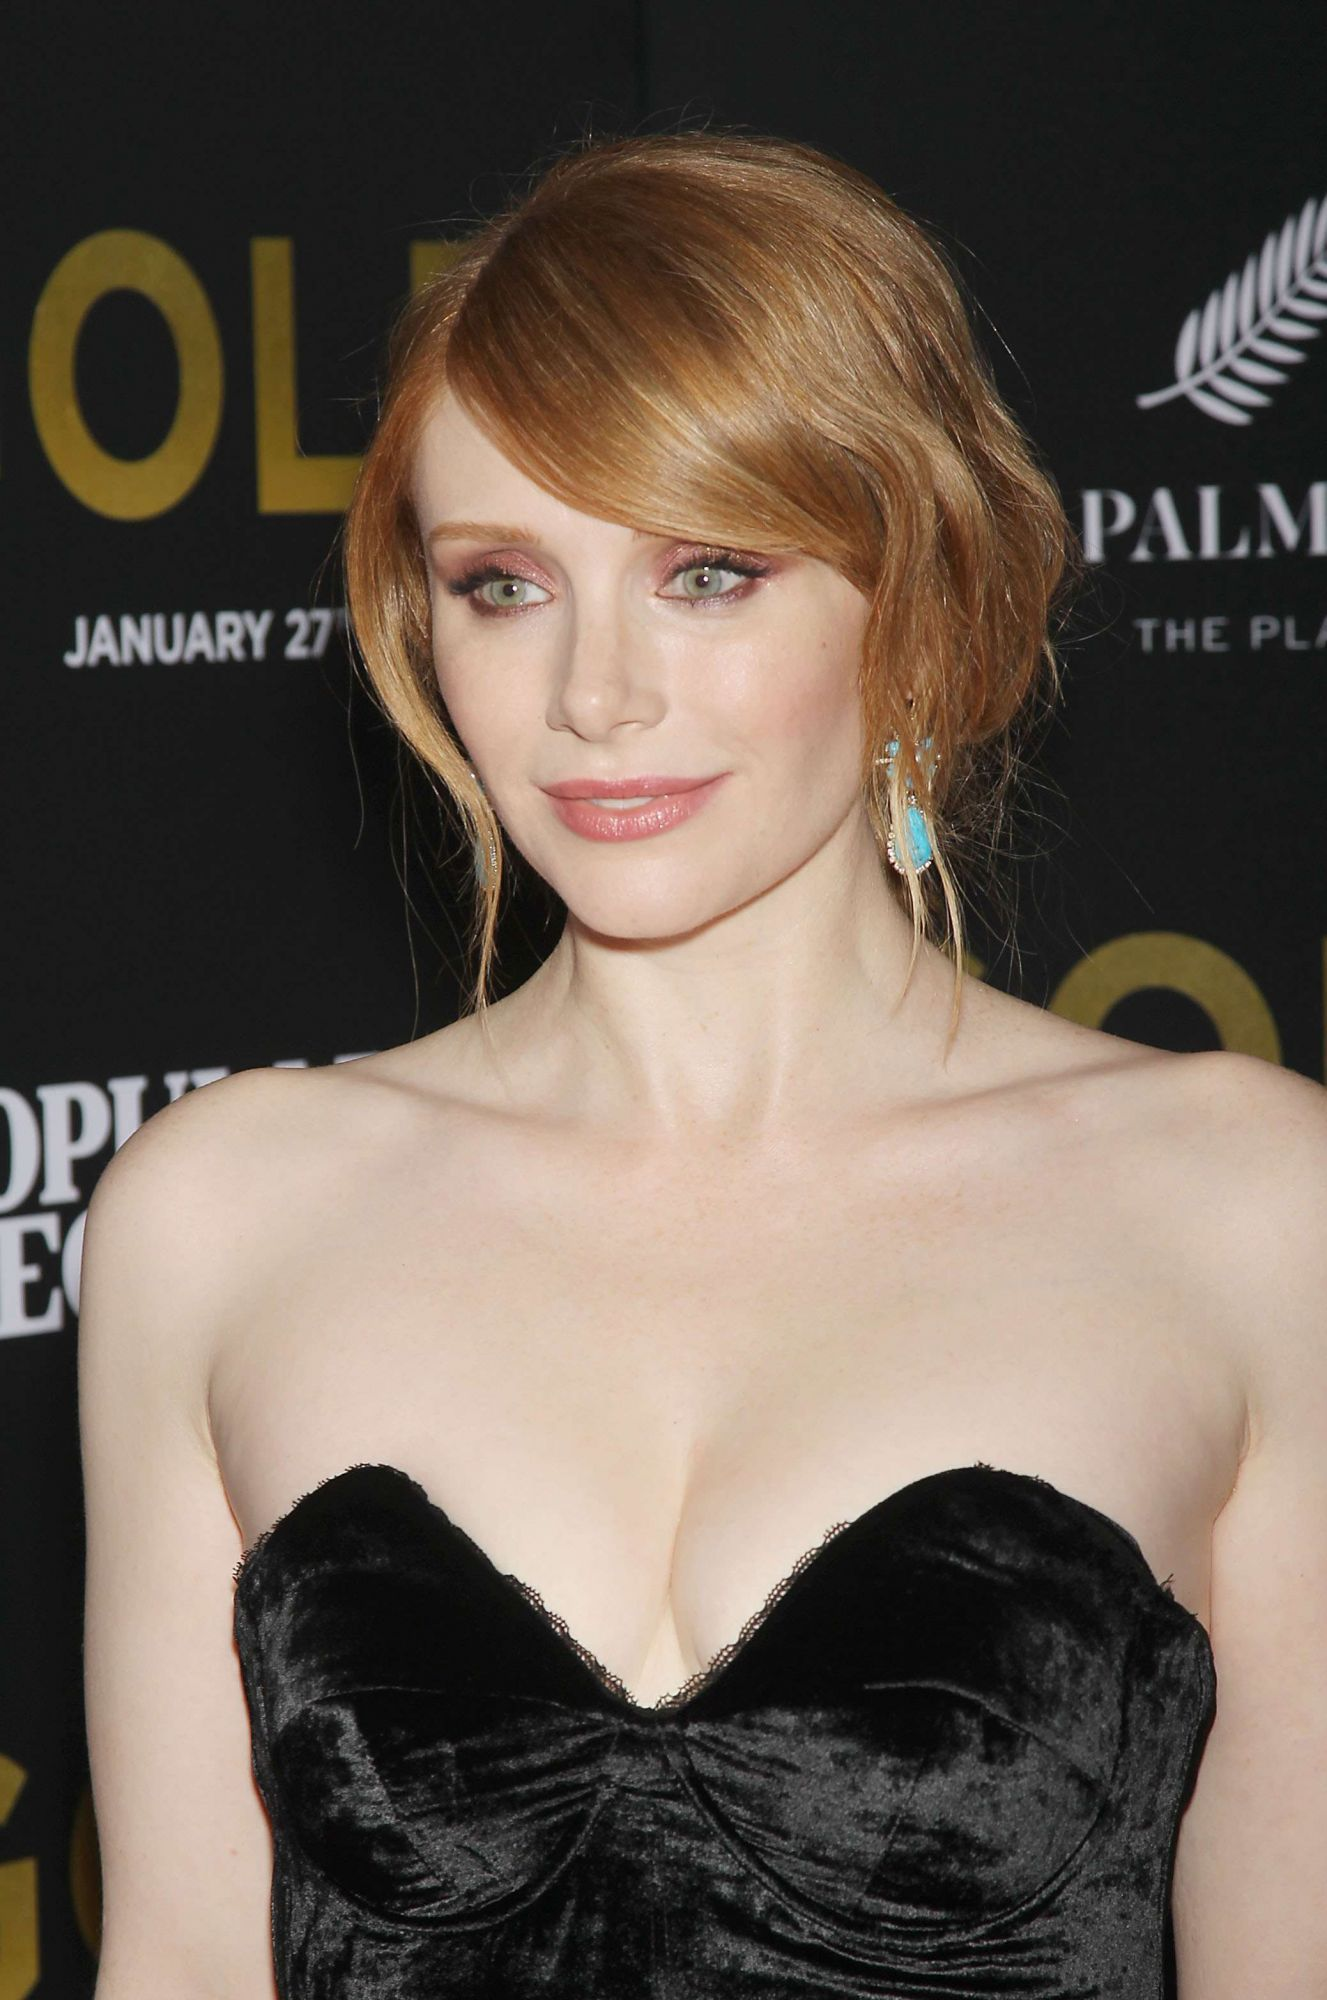 Video Bryce Dallas Howard nudes (77 photo), Ass, Cleavage, Twitter, braless 2018